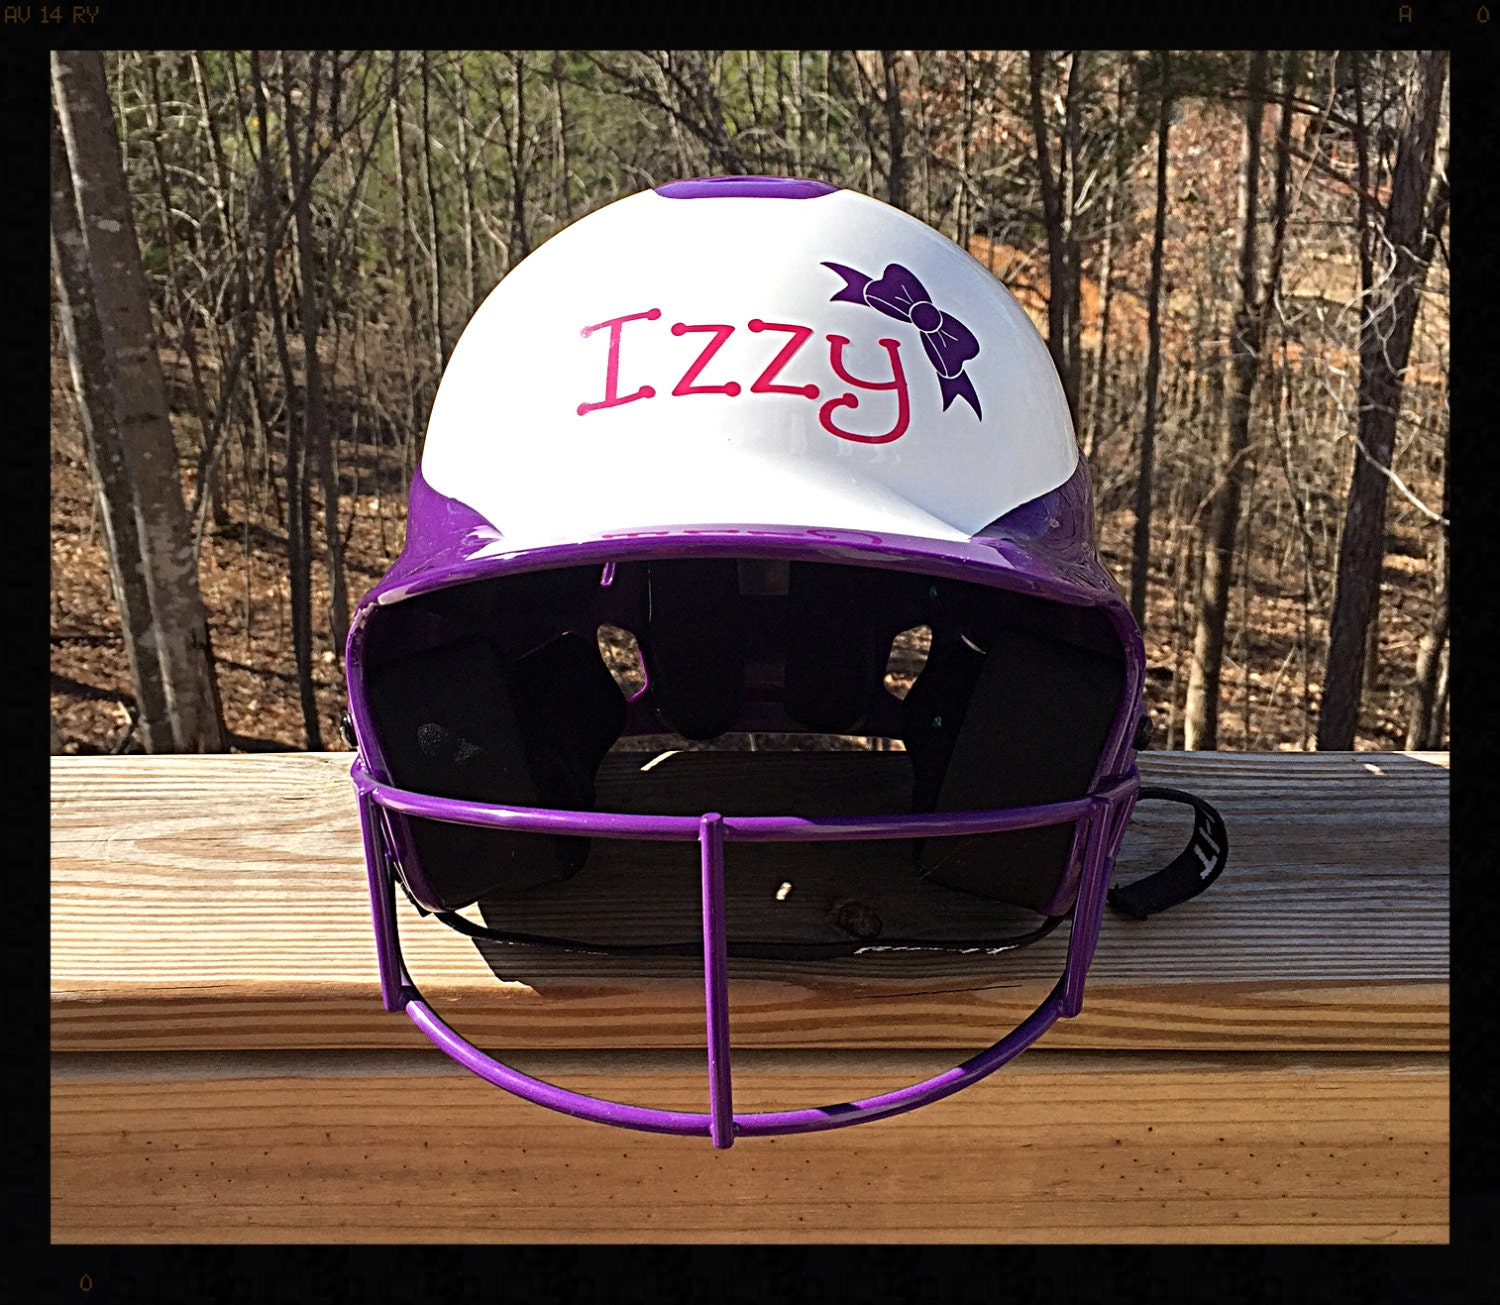 Monogrammed/Personalized Softball Helmet Decal/Sticker with a